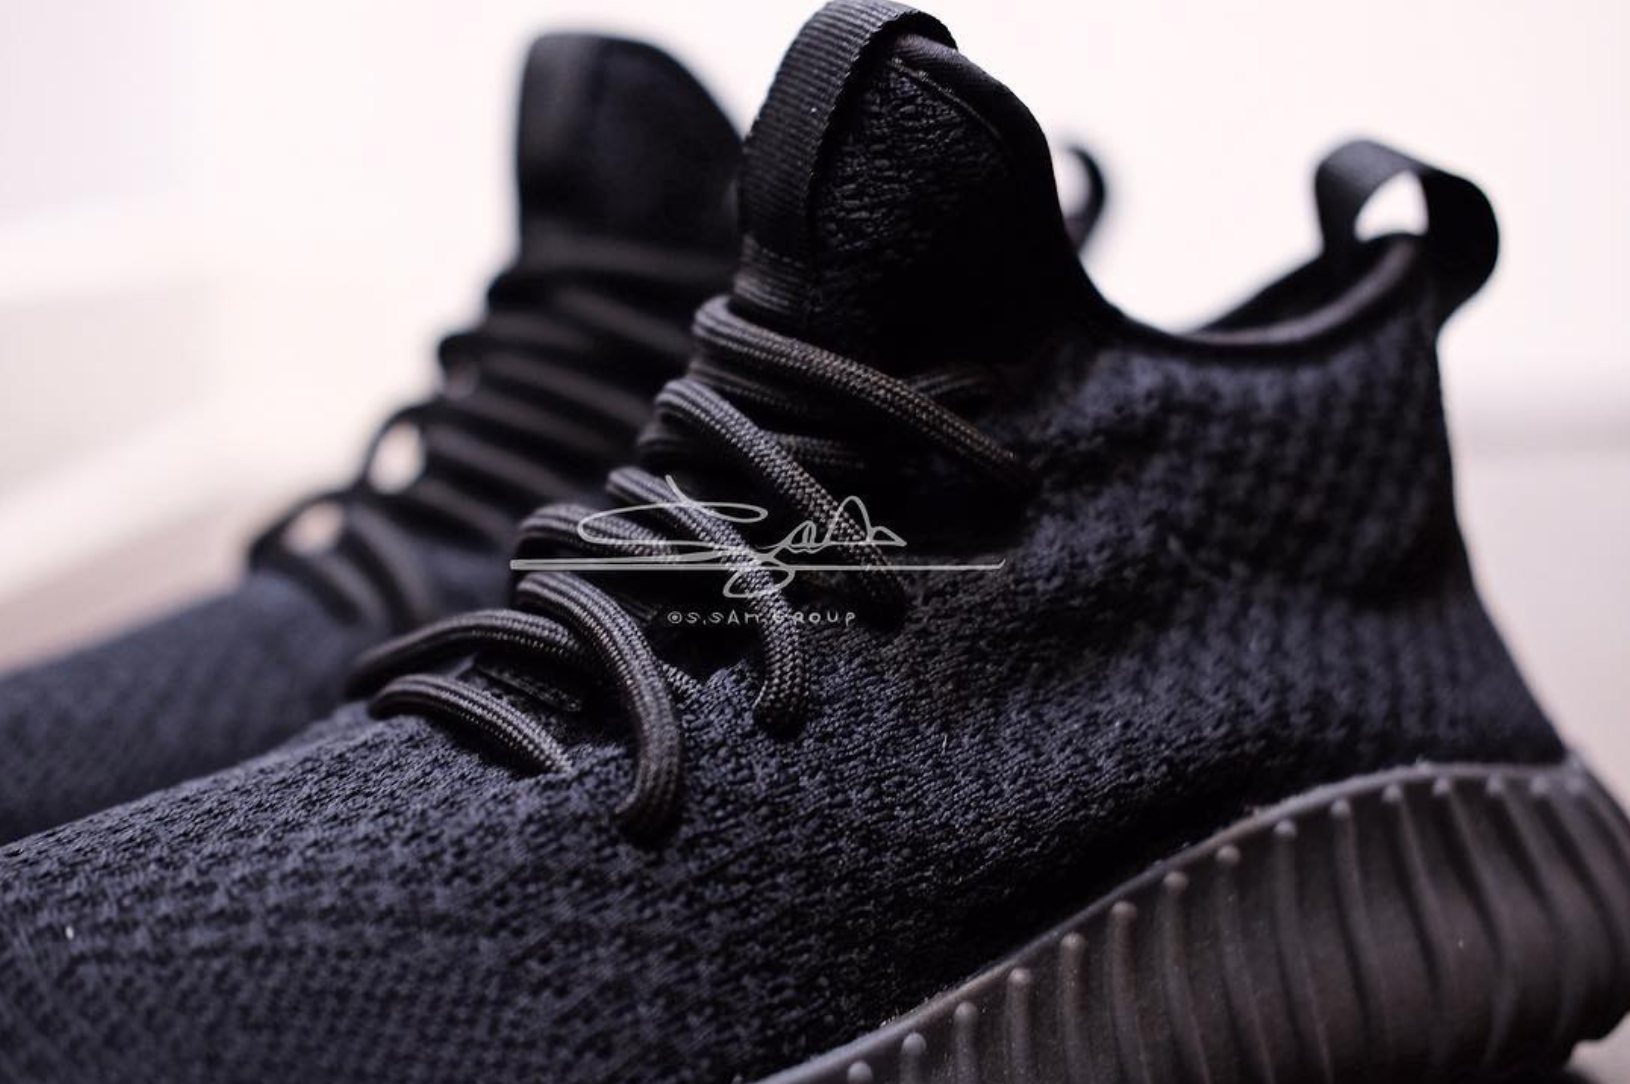 9c2bedebd5f5e triple white adidas yeezy boost 650 cheap black white and red shoes